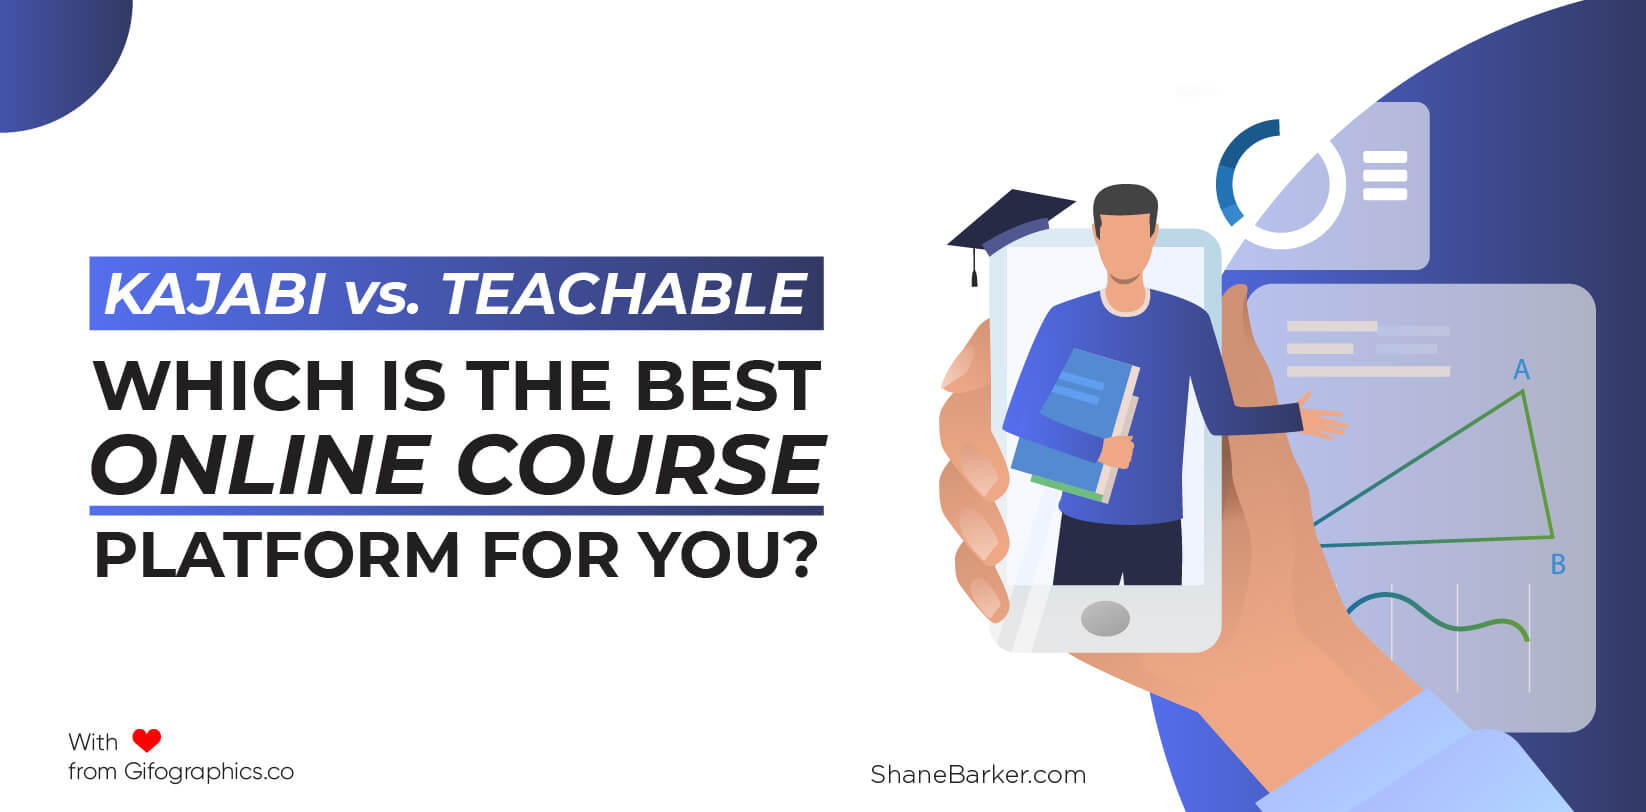 Kajabi vs. Teachable - Which is the Best Online Course Platform For You